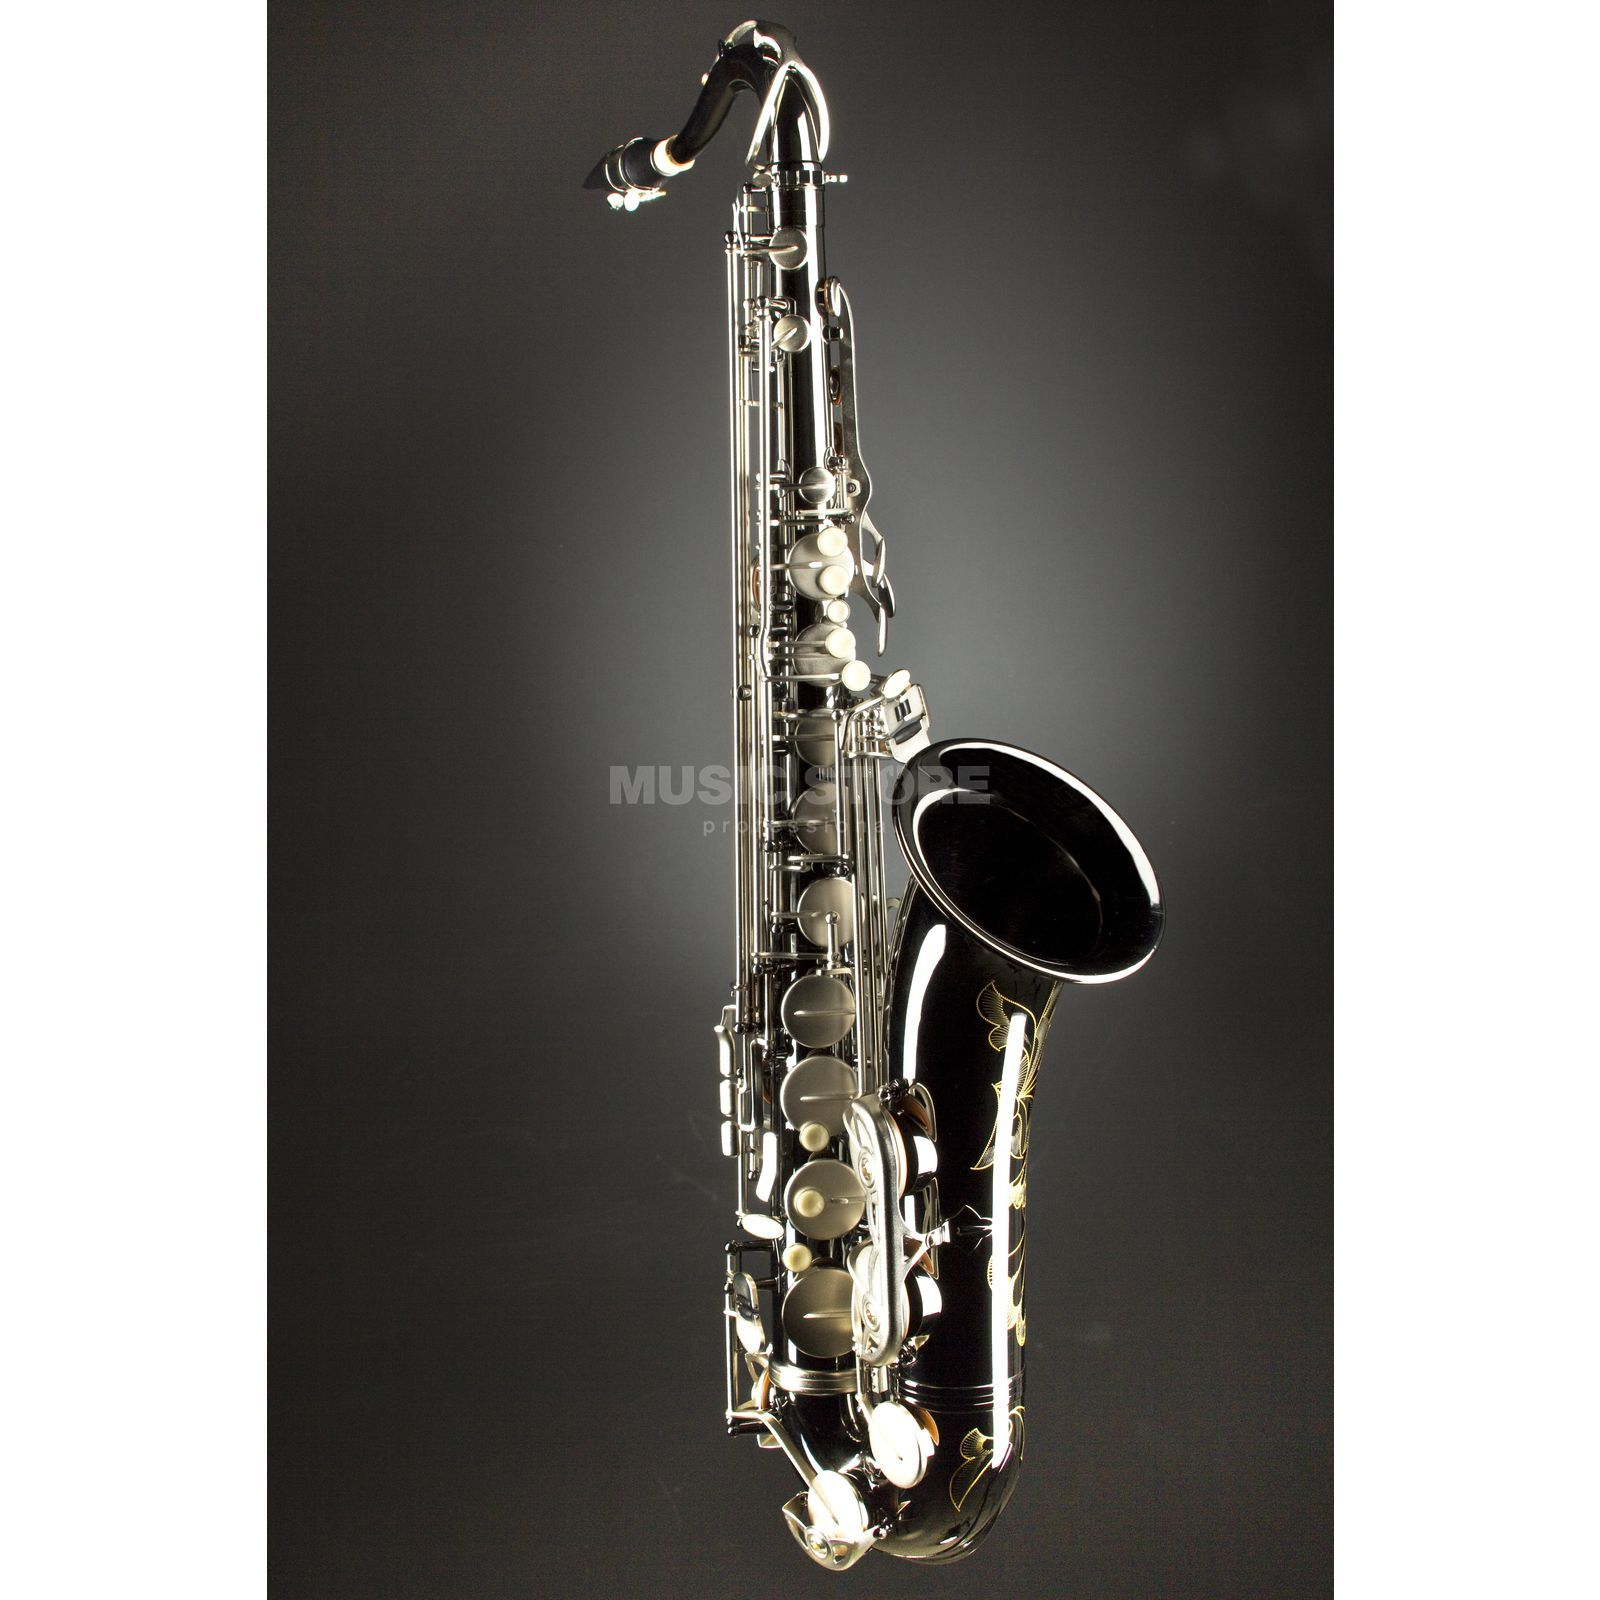 Monzani MZTS-333BN Bb-Tenor Saxophone Brass, Black Nickel Plated Zdjęcie produktu